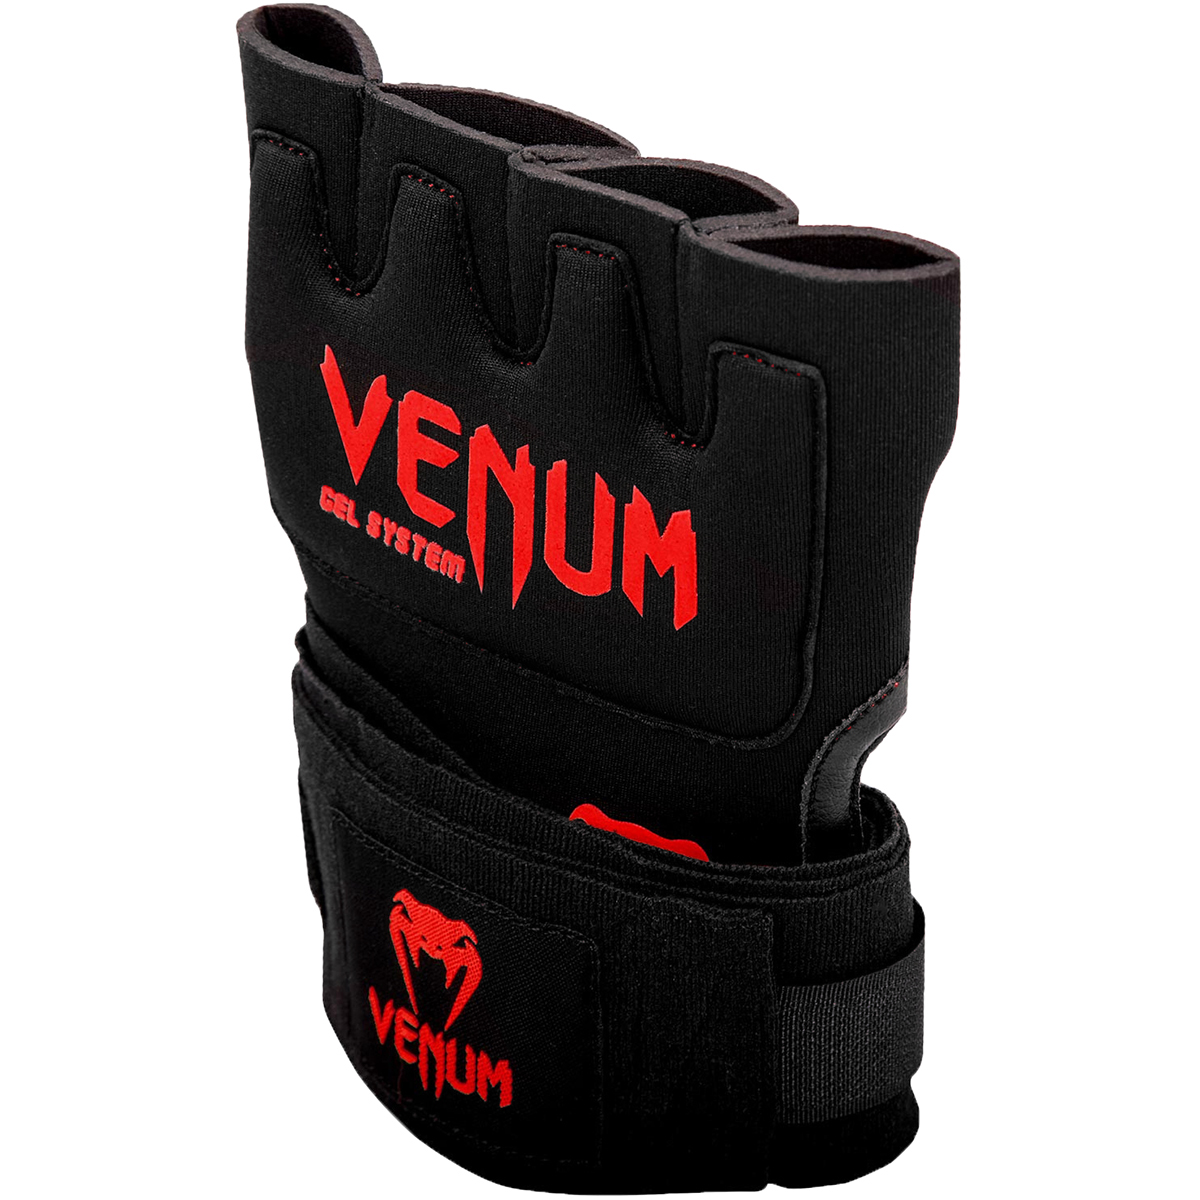 Venum-Kontact-Protective-Shock-Absorbing-Gel-MMA-Glove-Wraps thumbnail 8